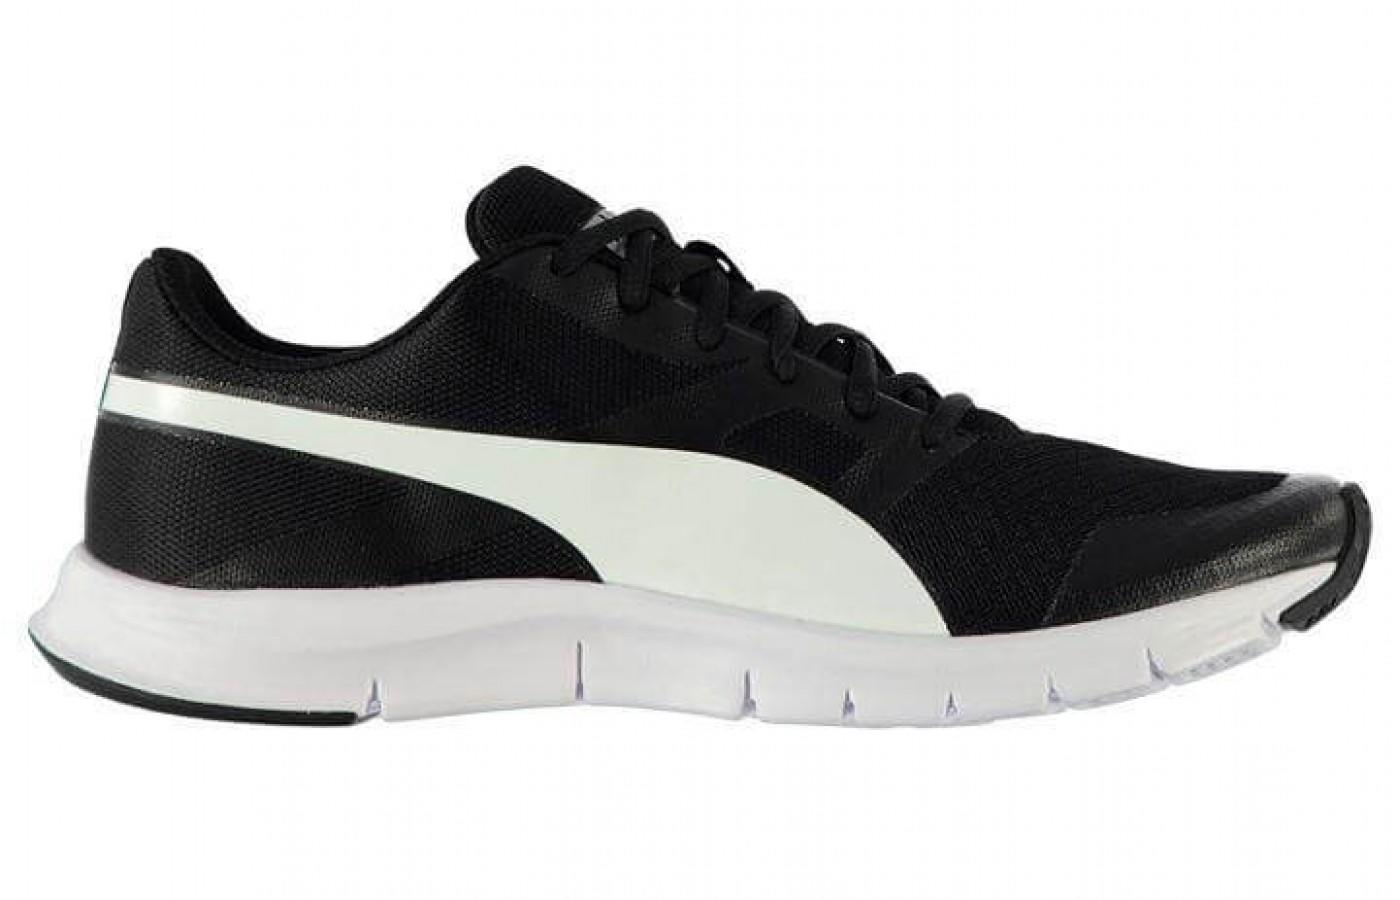 The Puma Flex Racer is a neutral shoe